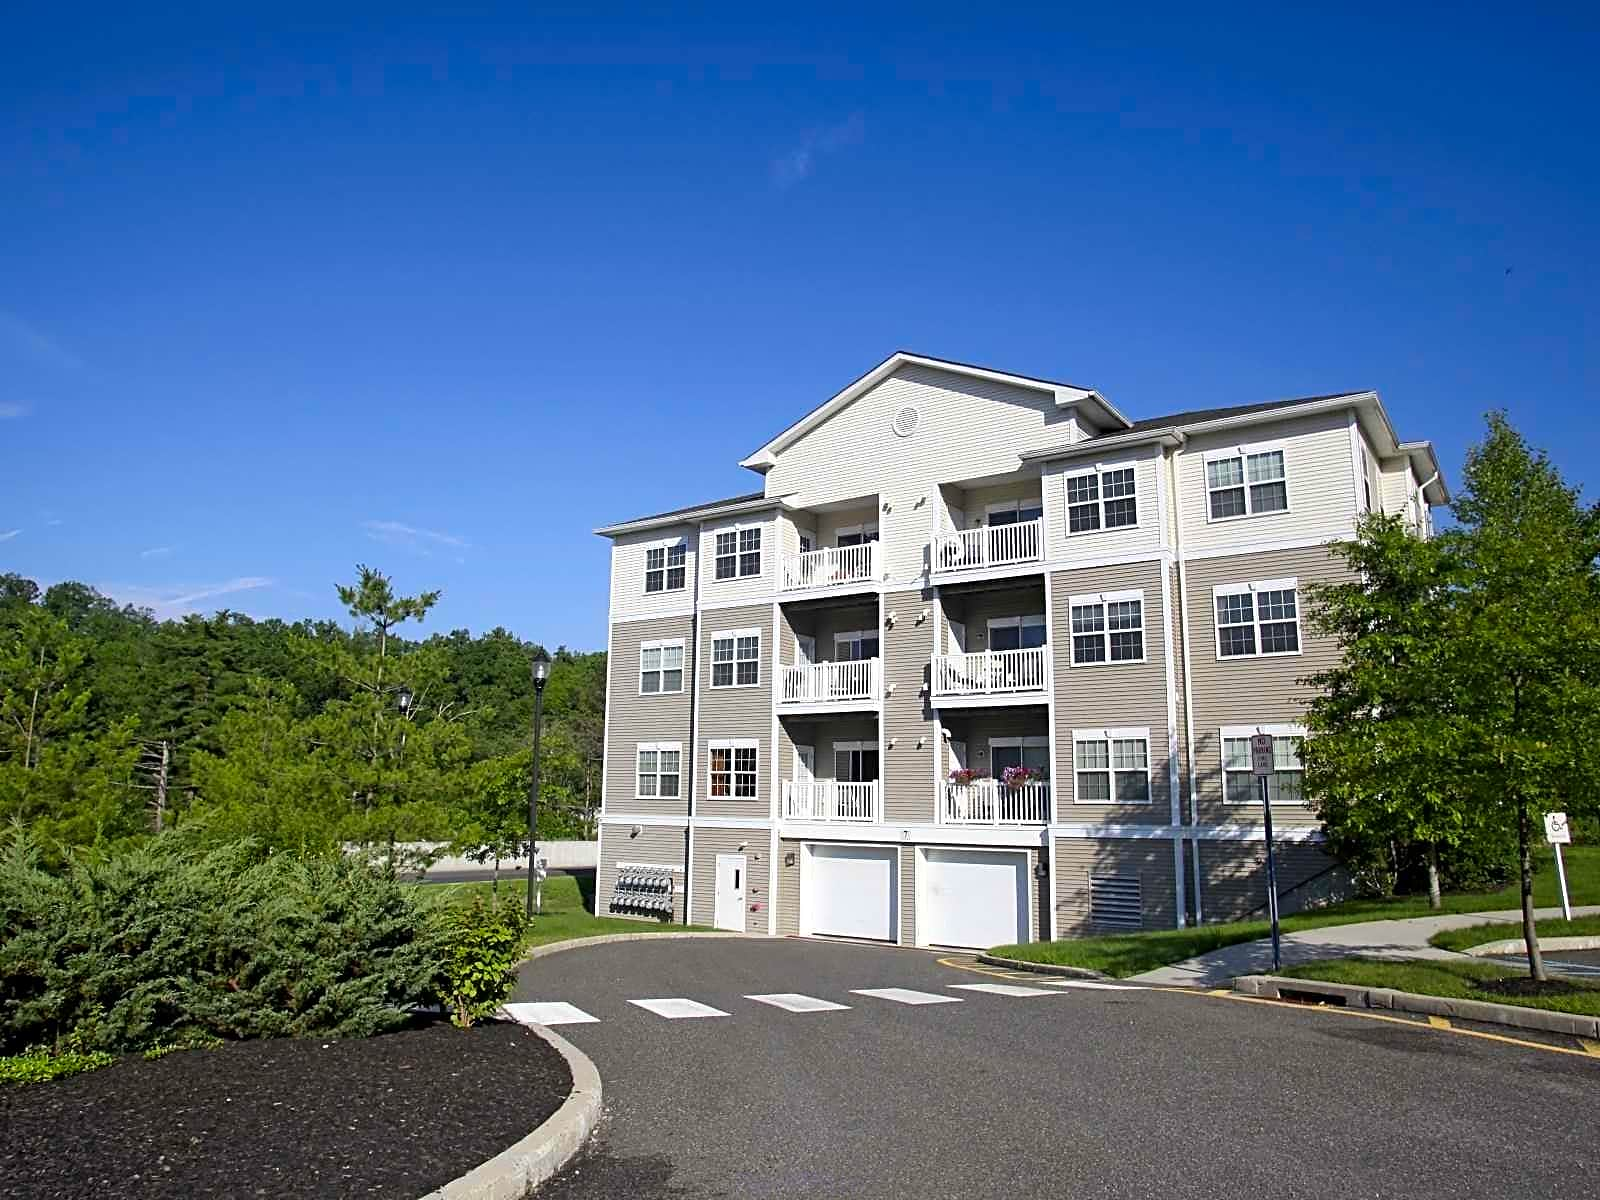 Apartments And Houses For Rent In Danbury